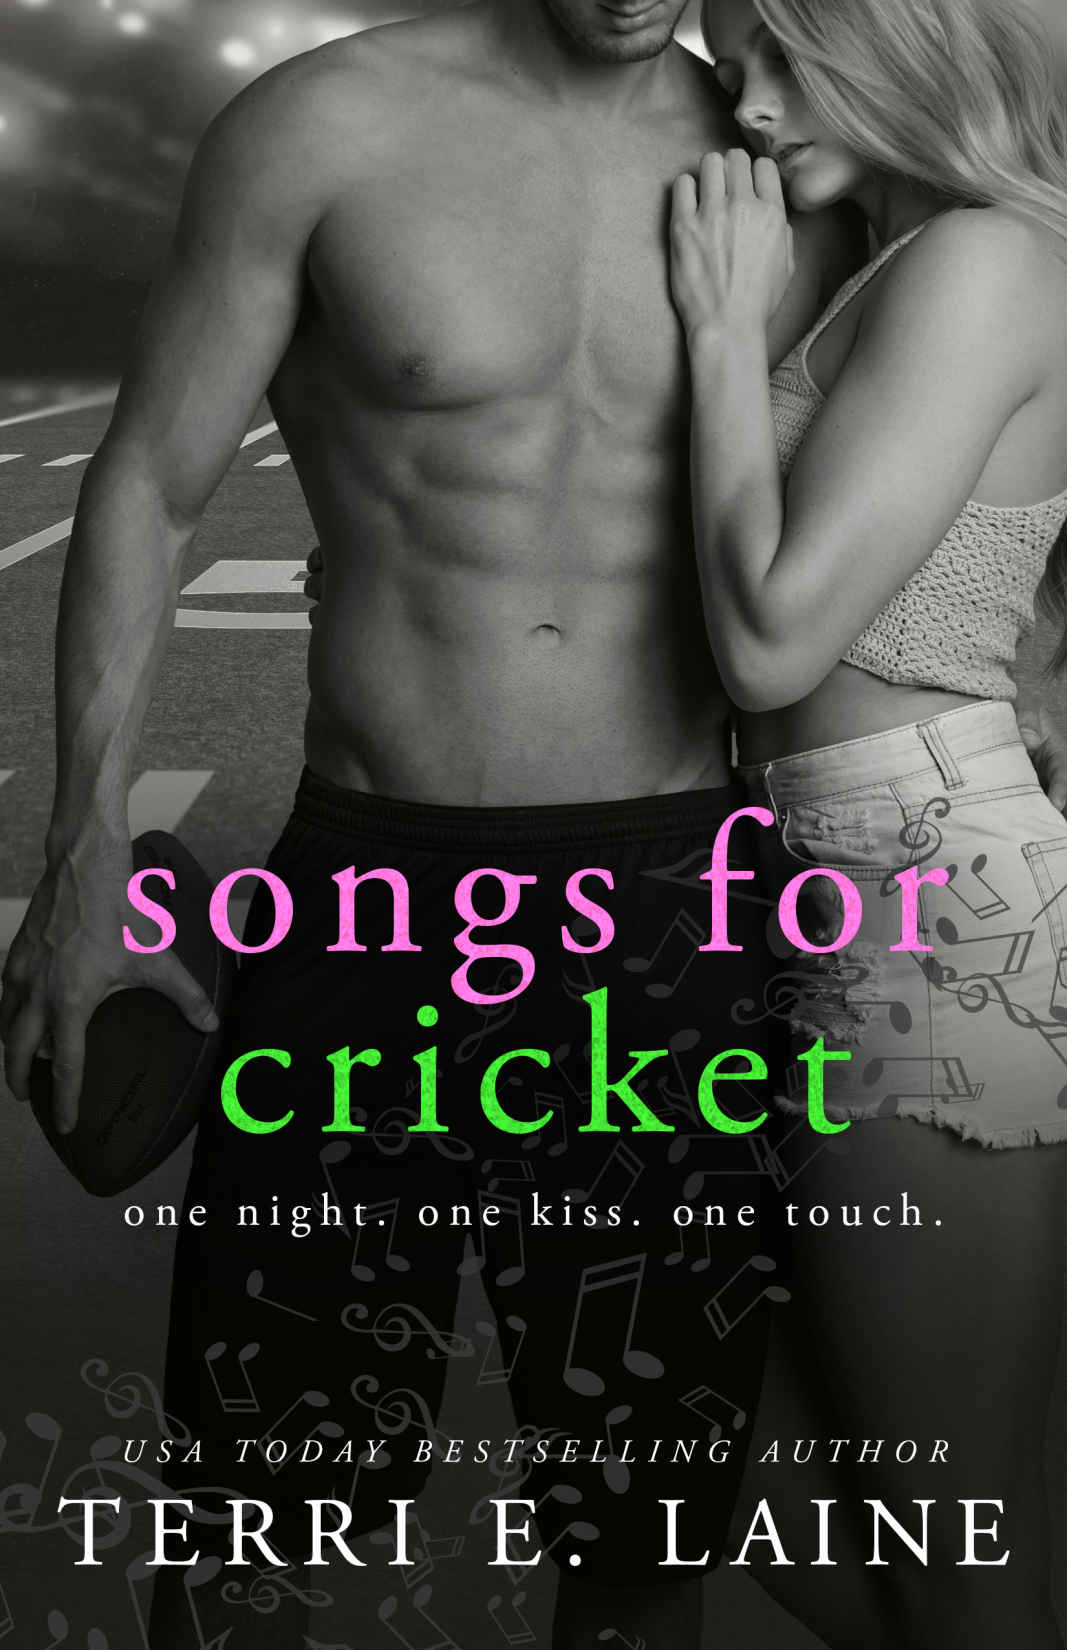 Songs for Cricket - By Terri E. Laine